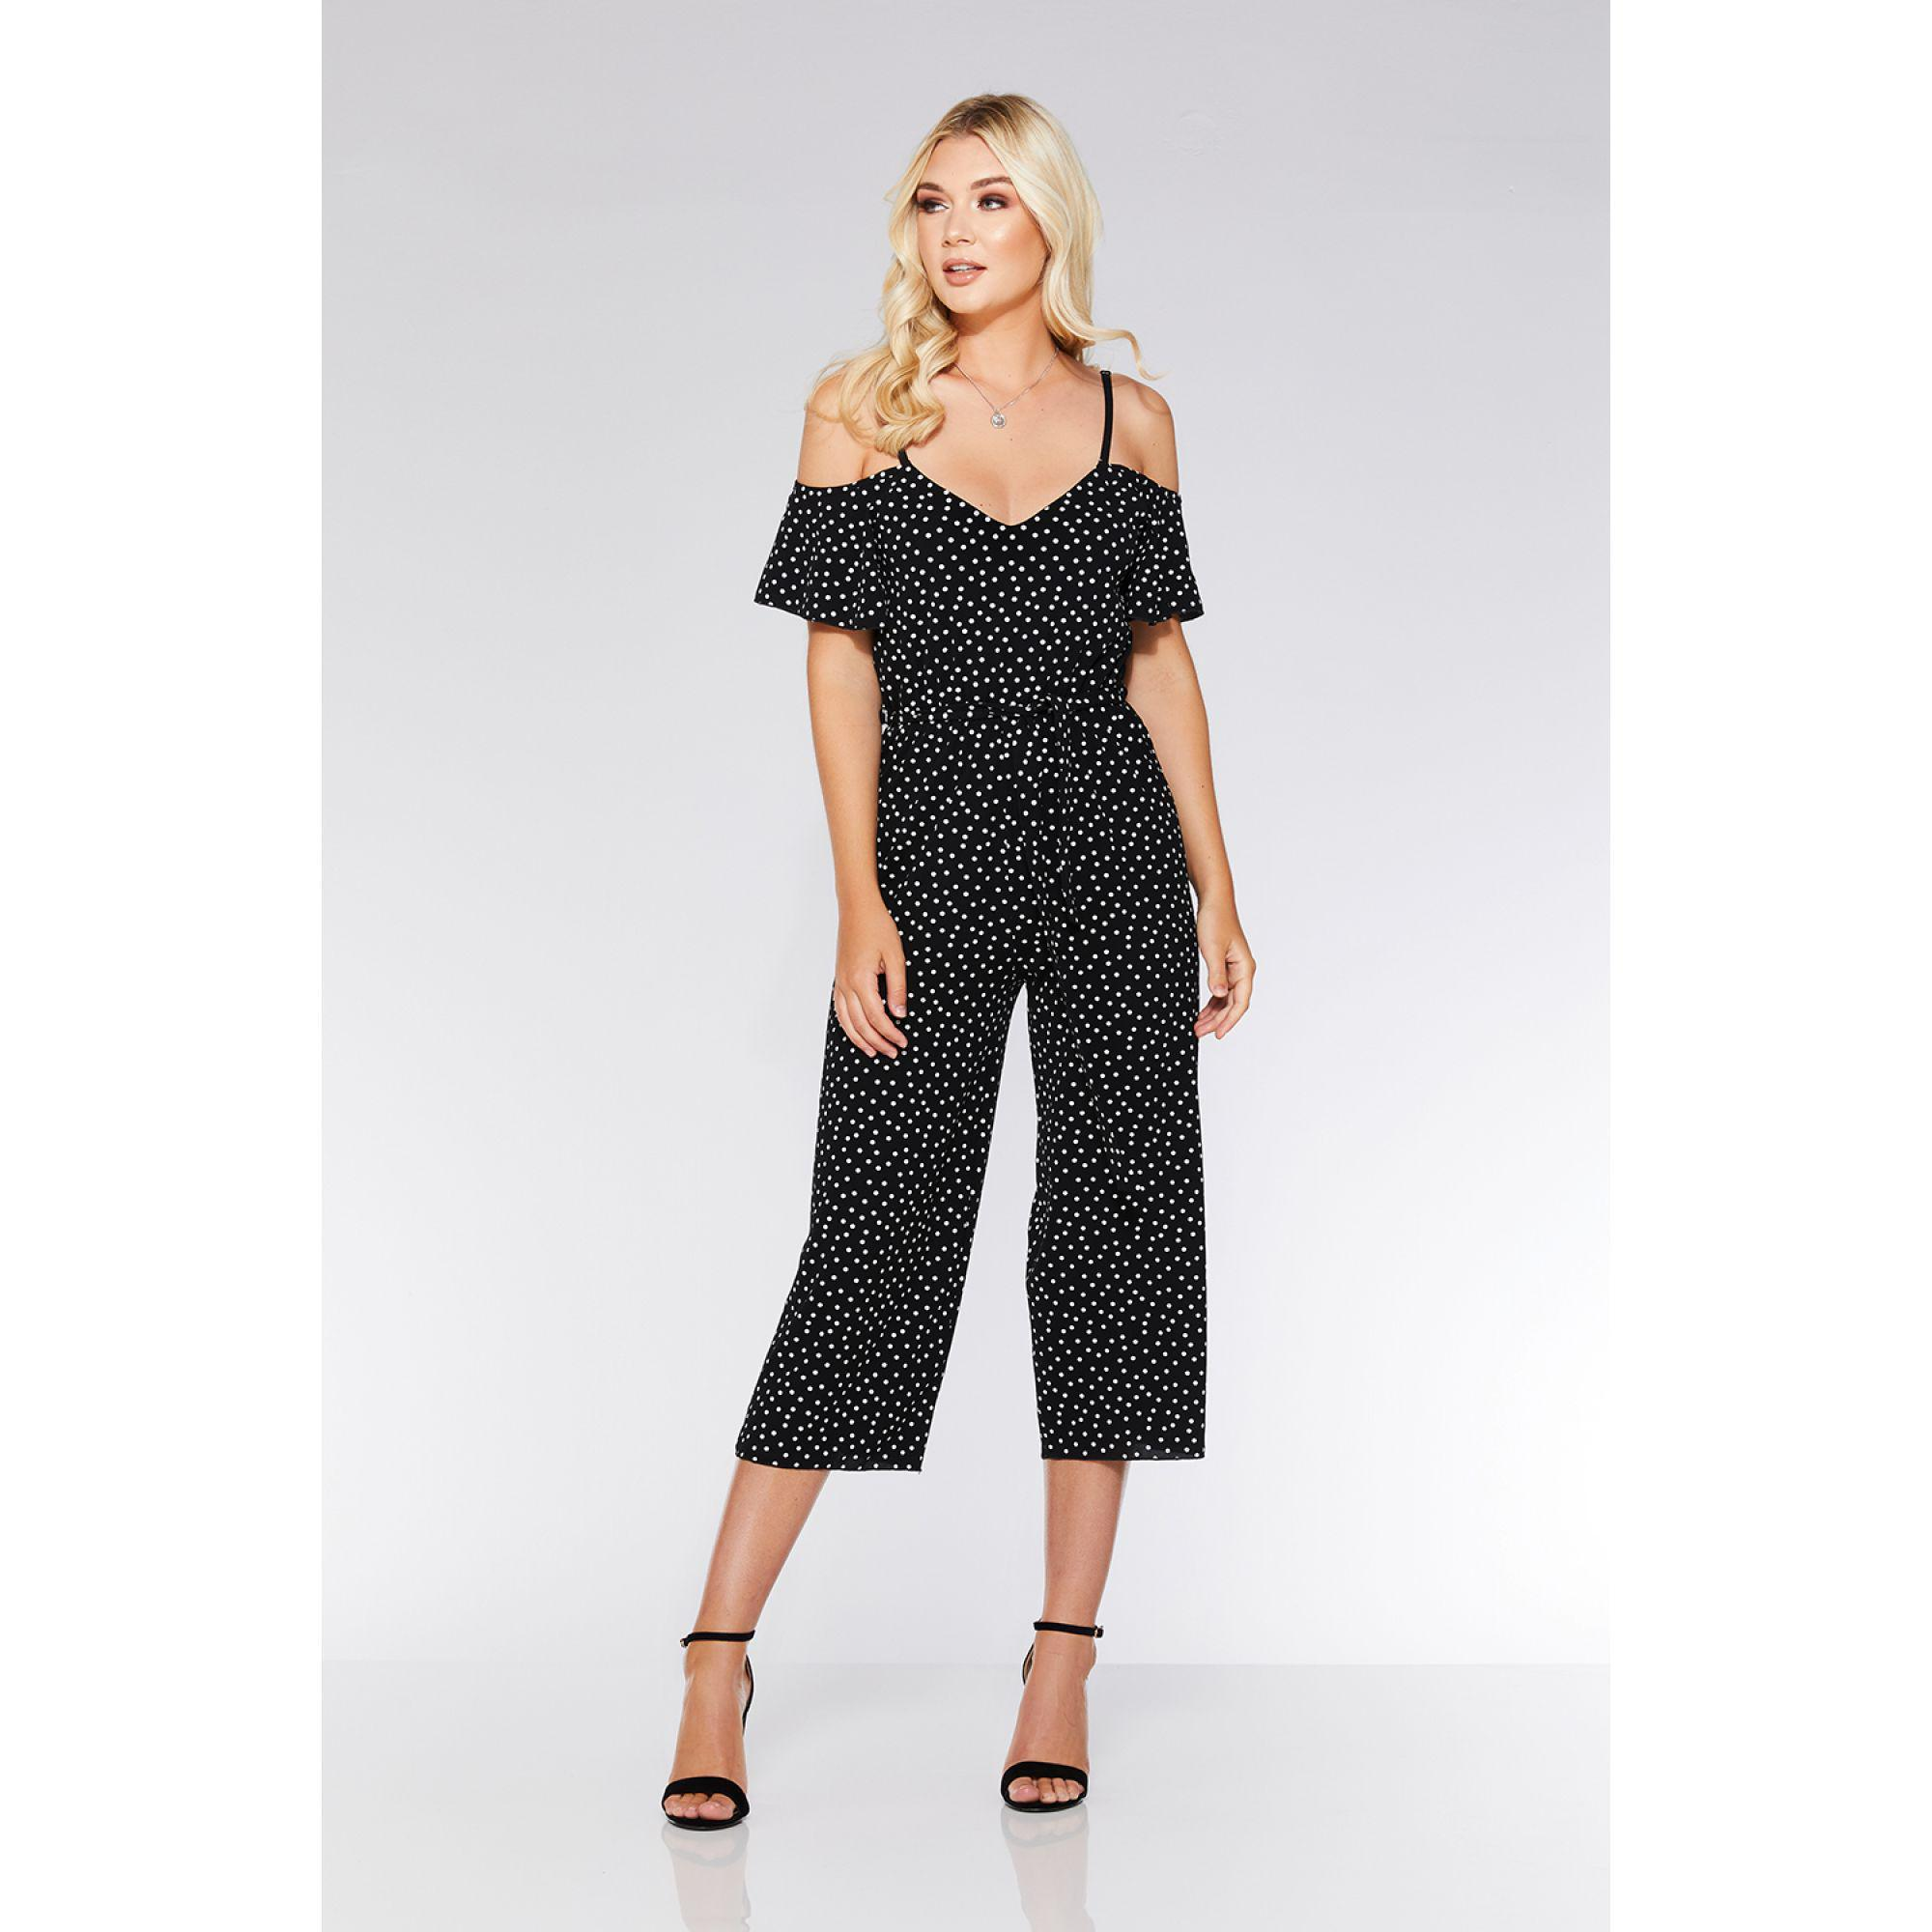 238c986cef3c Quiz - Black And White Polka Dot Cold Shoulder Jumpsuit - Lyst. View  fullscreen